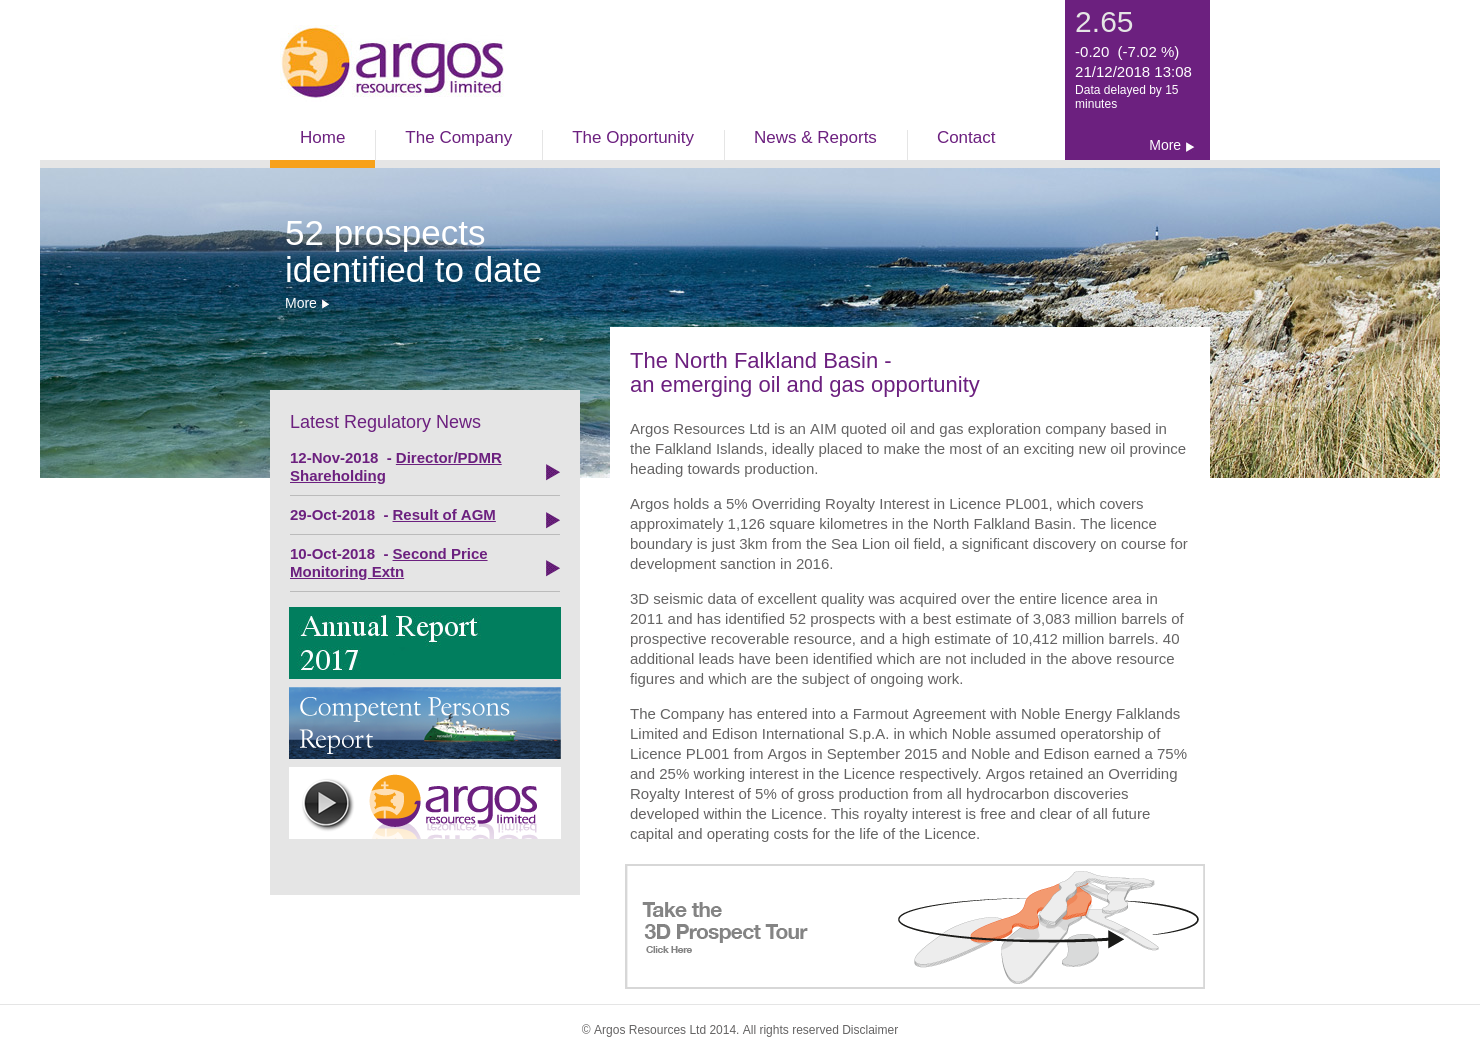 Argos Resources Home Page